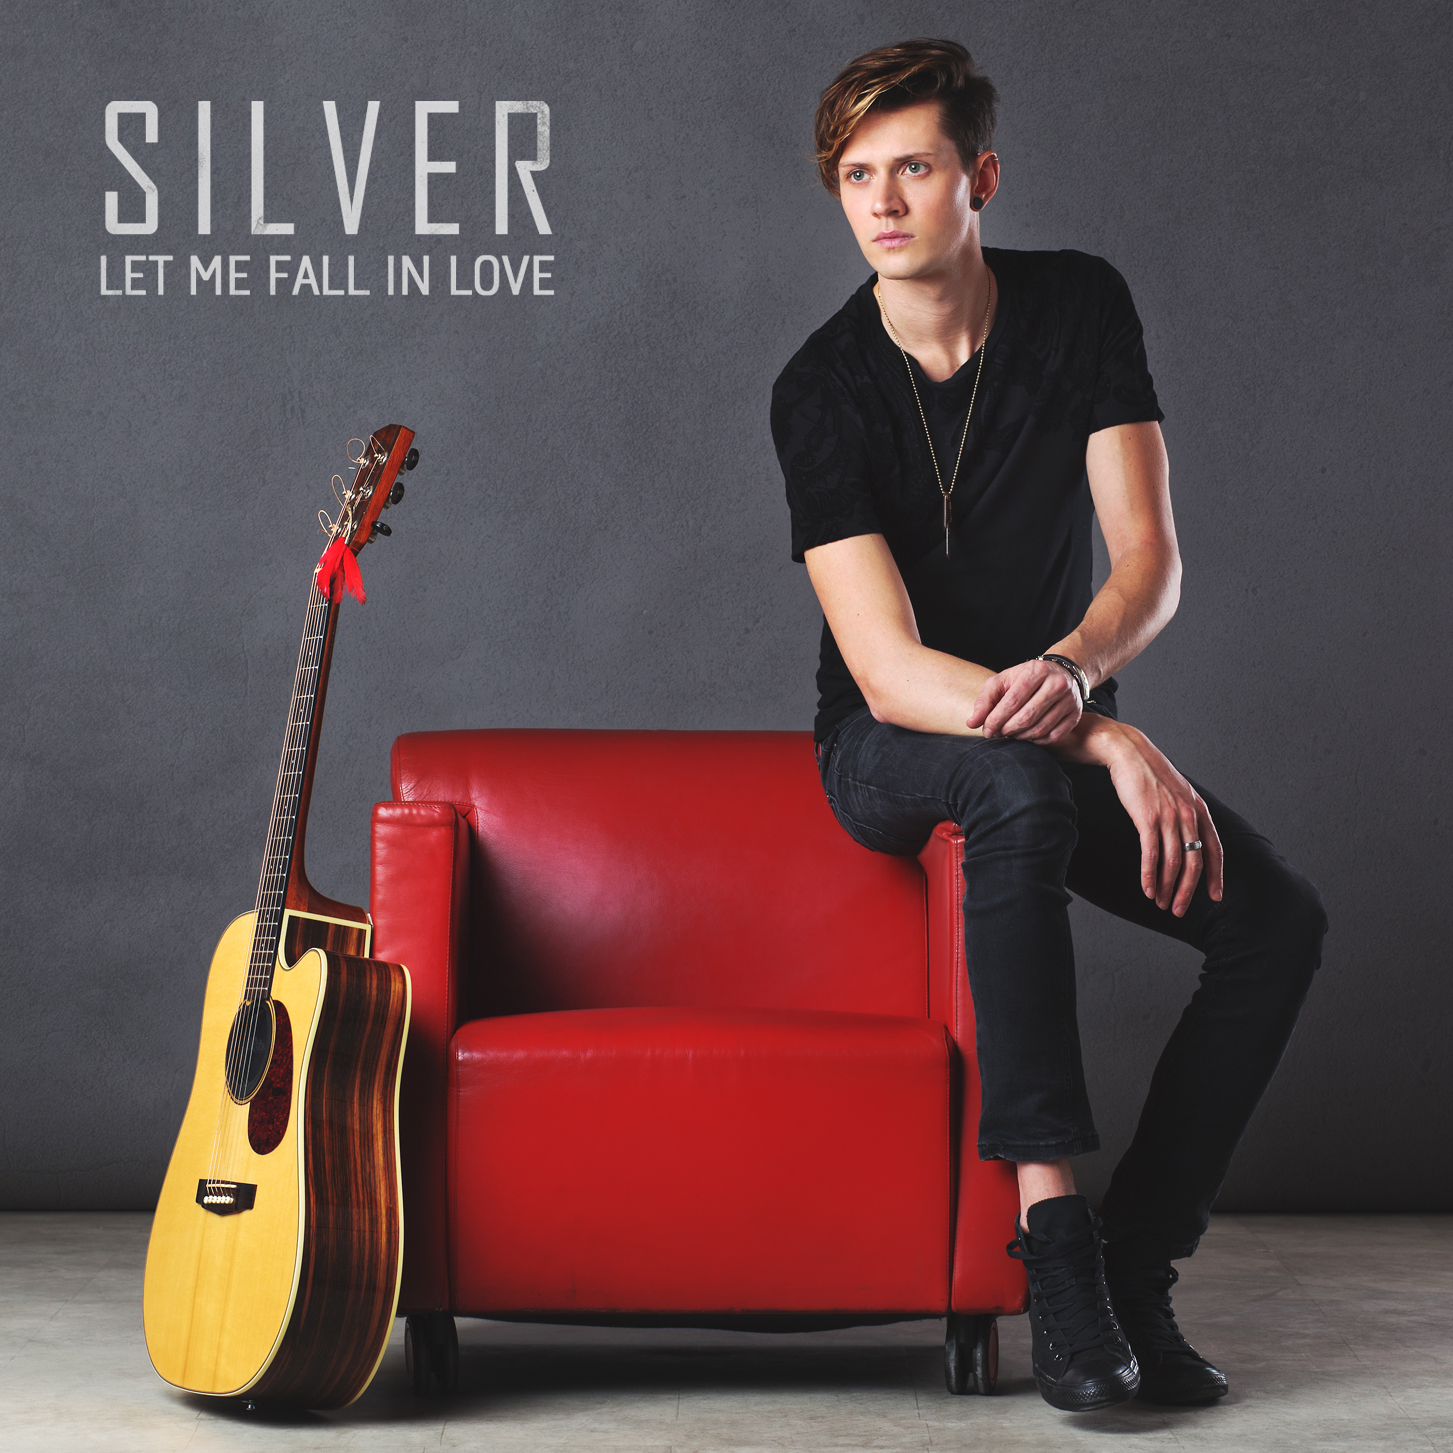 Cover: Let me fall in love (2018)